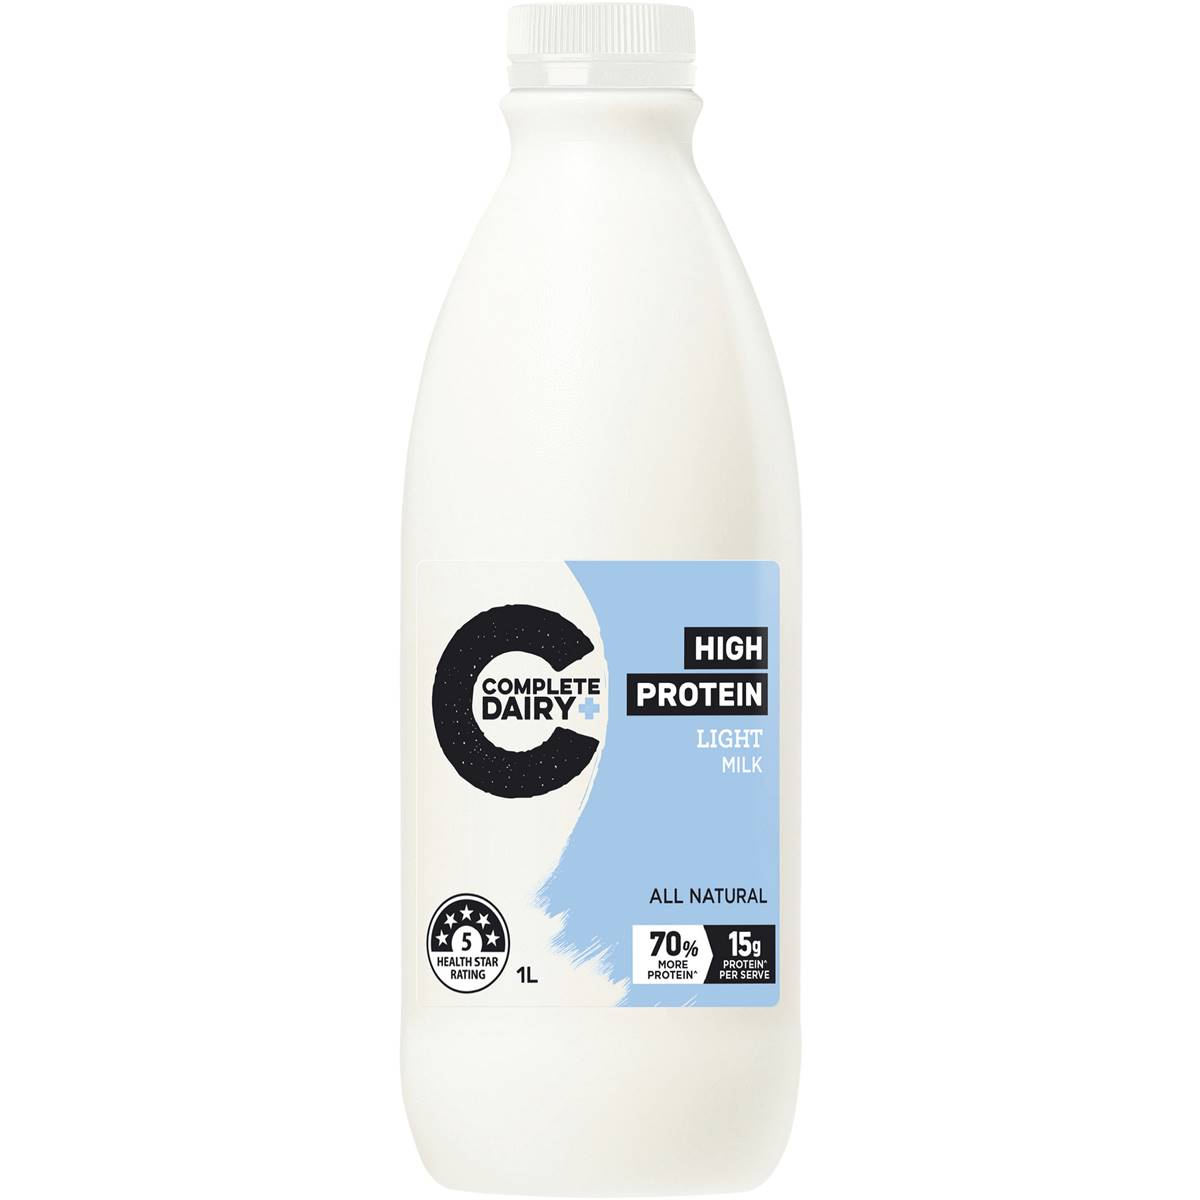 The Complete Dairy Light Milk High Protein